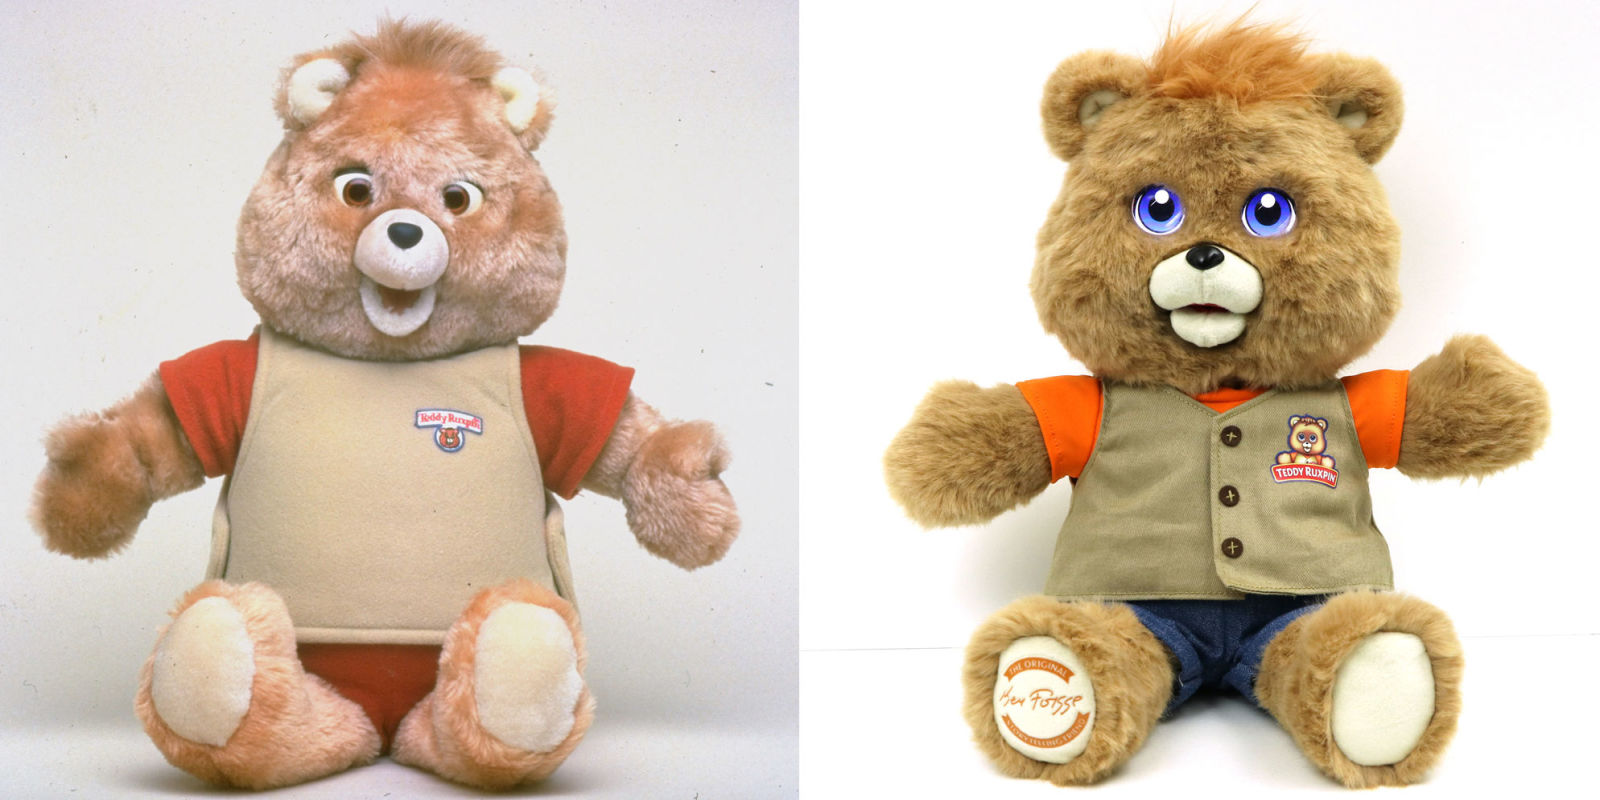 Win a new bathroom - Teddy Ruxpin Talking Teddy Bears Making A Comeback